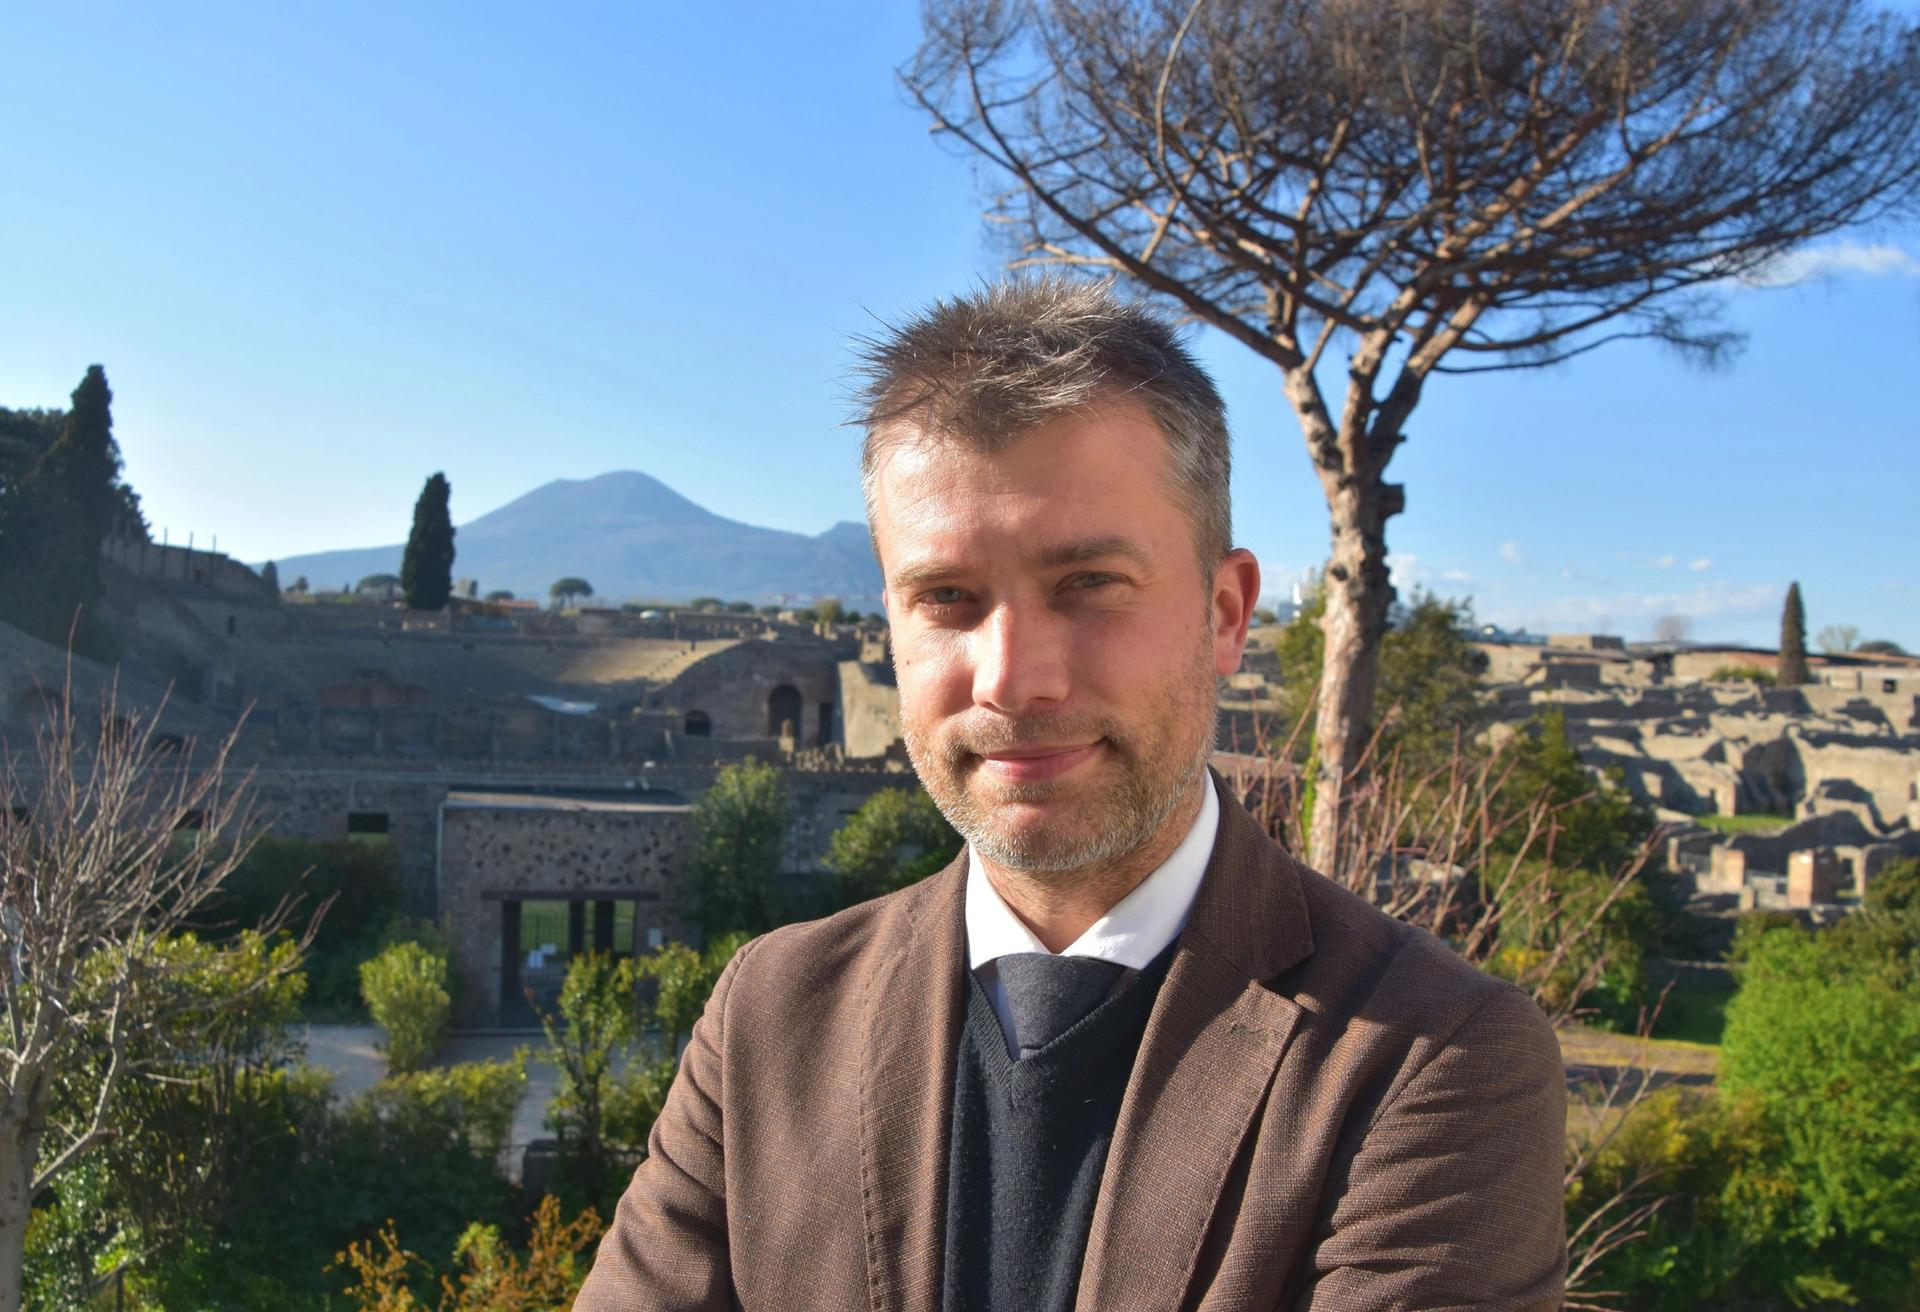 Gabriel Zuchtriegel, the new director of Pompeii archaeological park Photo: Parco Archeologico di Pompei